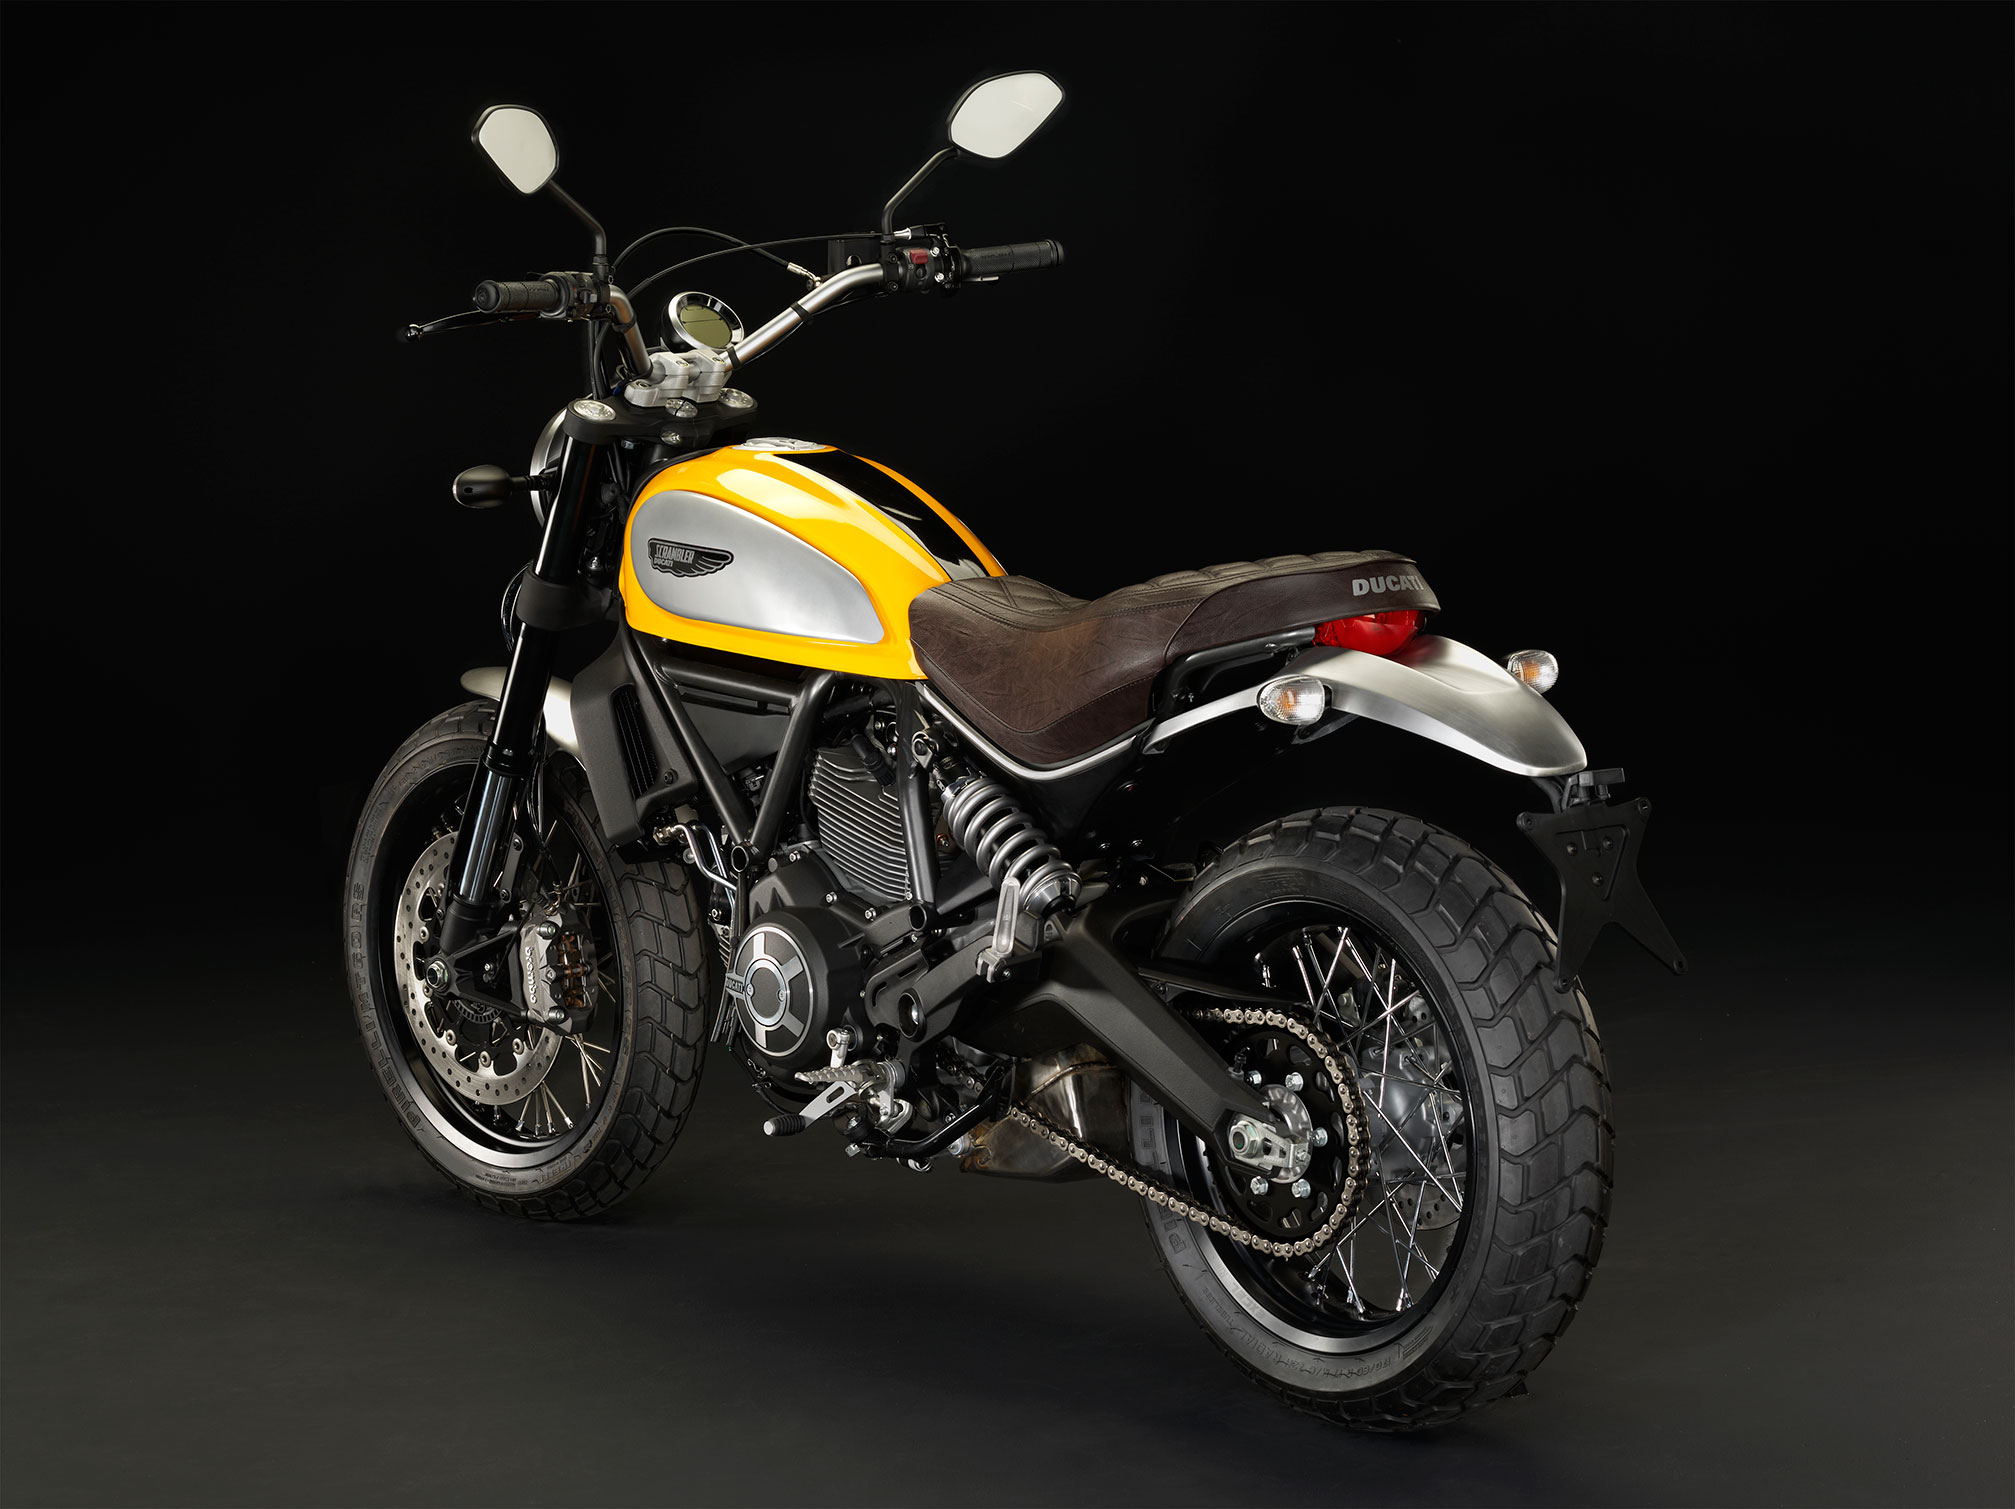 Remarkable 2015 Ducati Scrambler Classic Review Machost Co Dining Chair Design Ideas Machostcouk